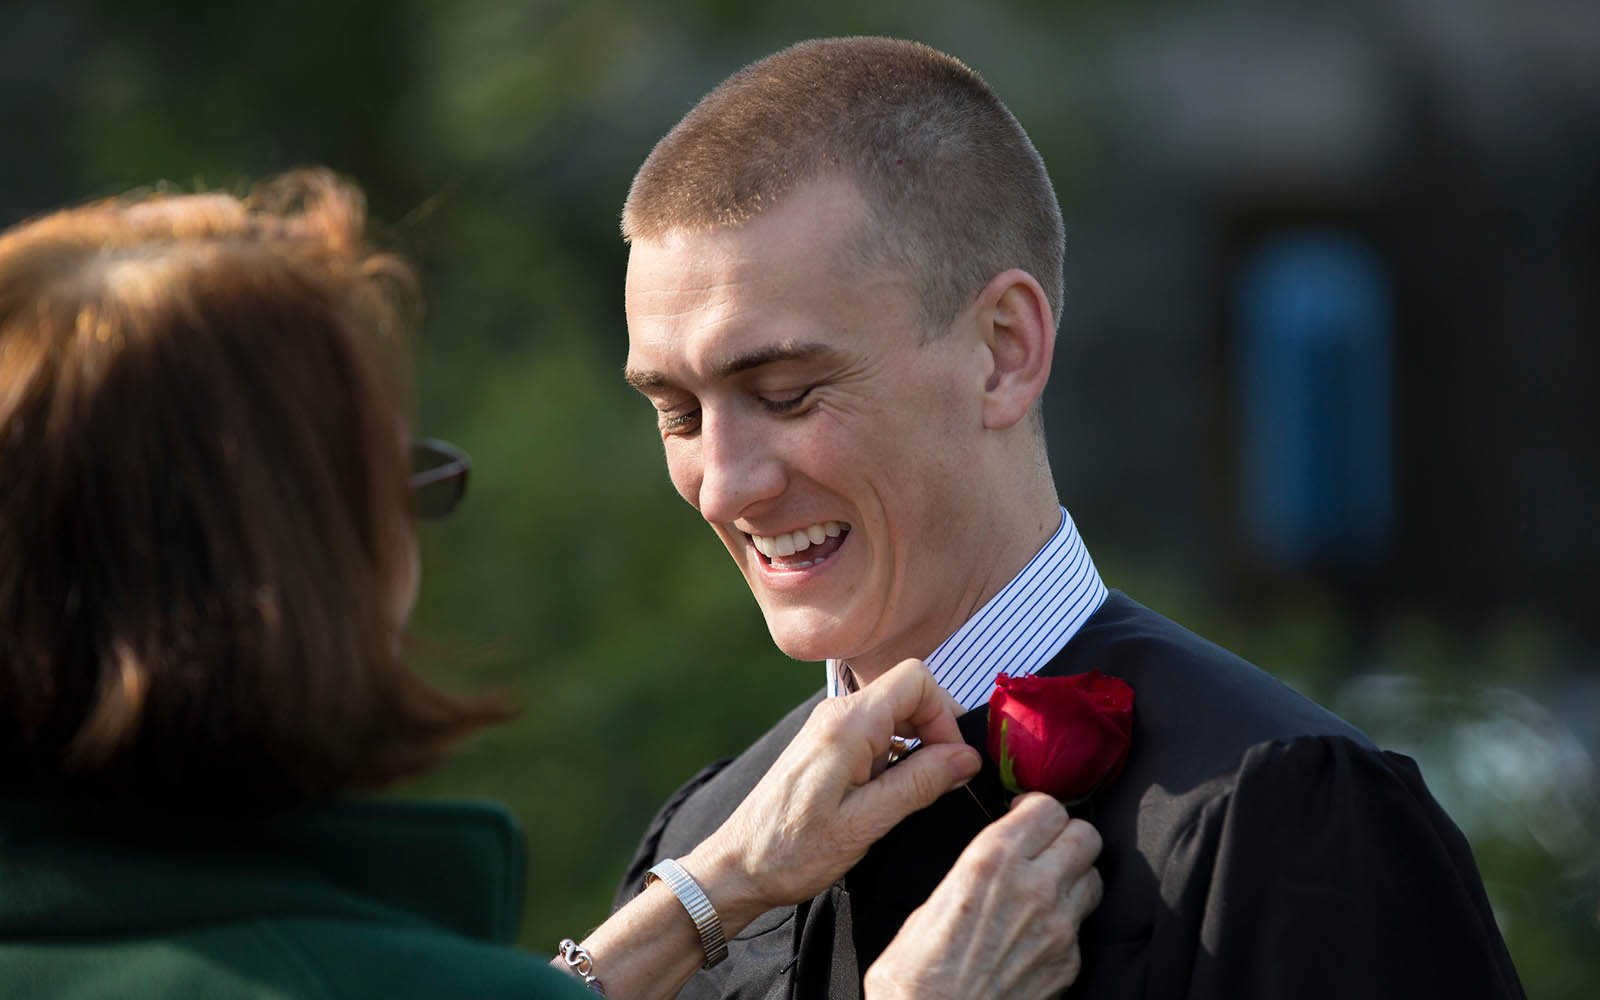 student getting rose attached to gown